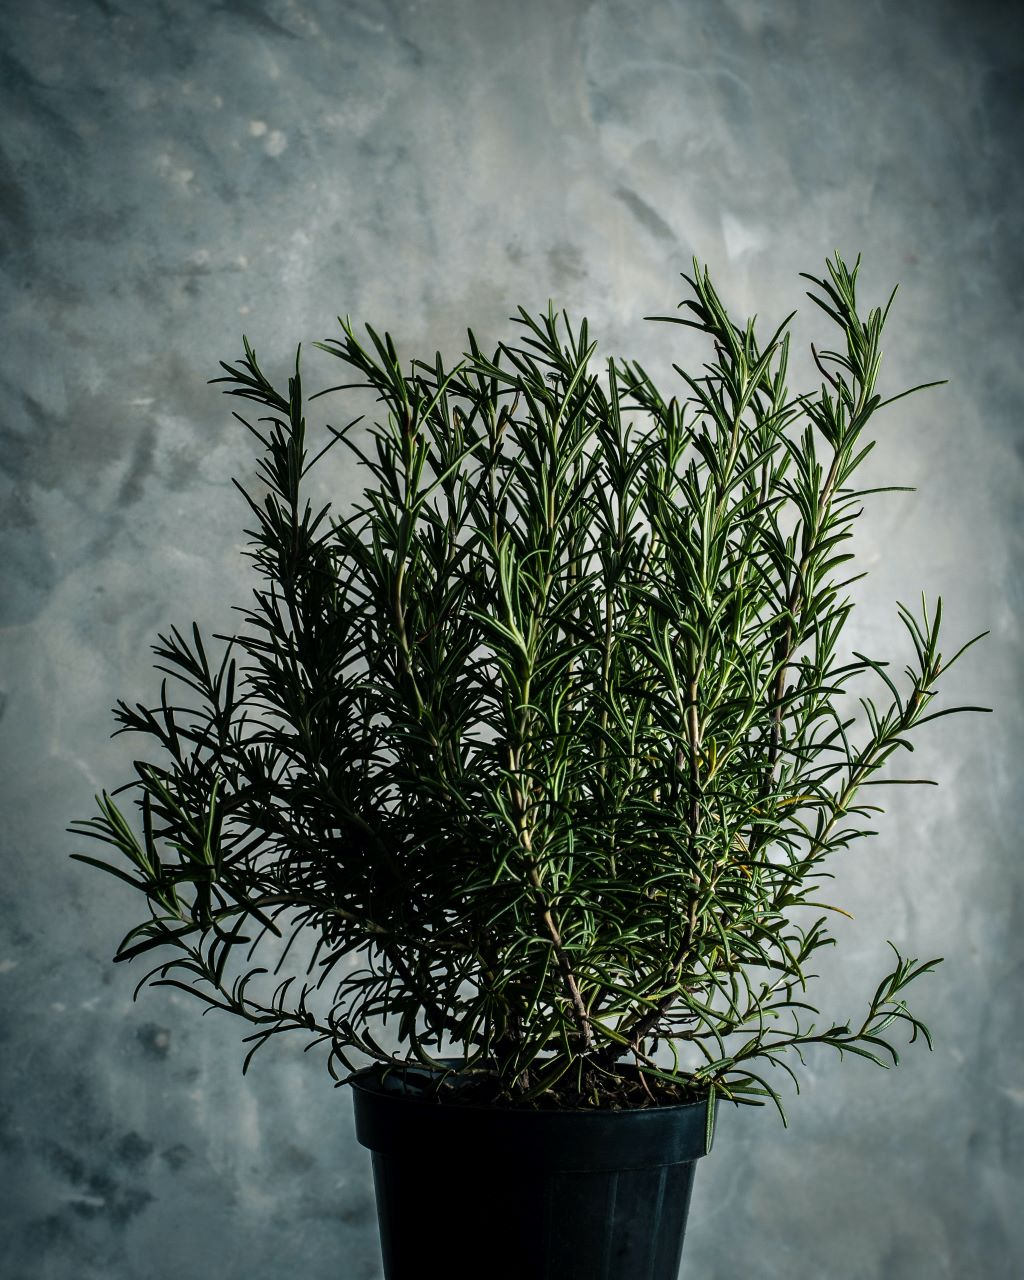 A new gourmet olive oil for 2020 Rosemary